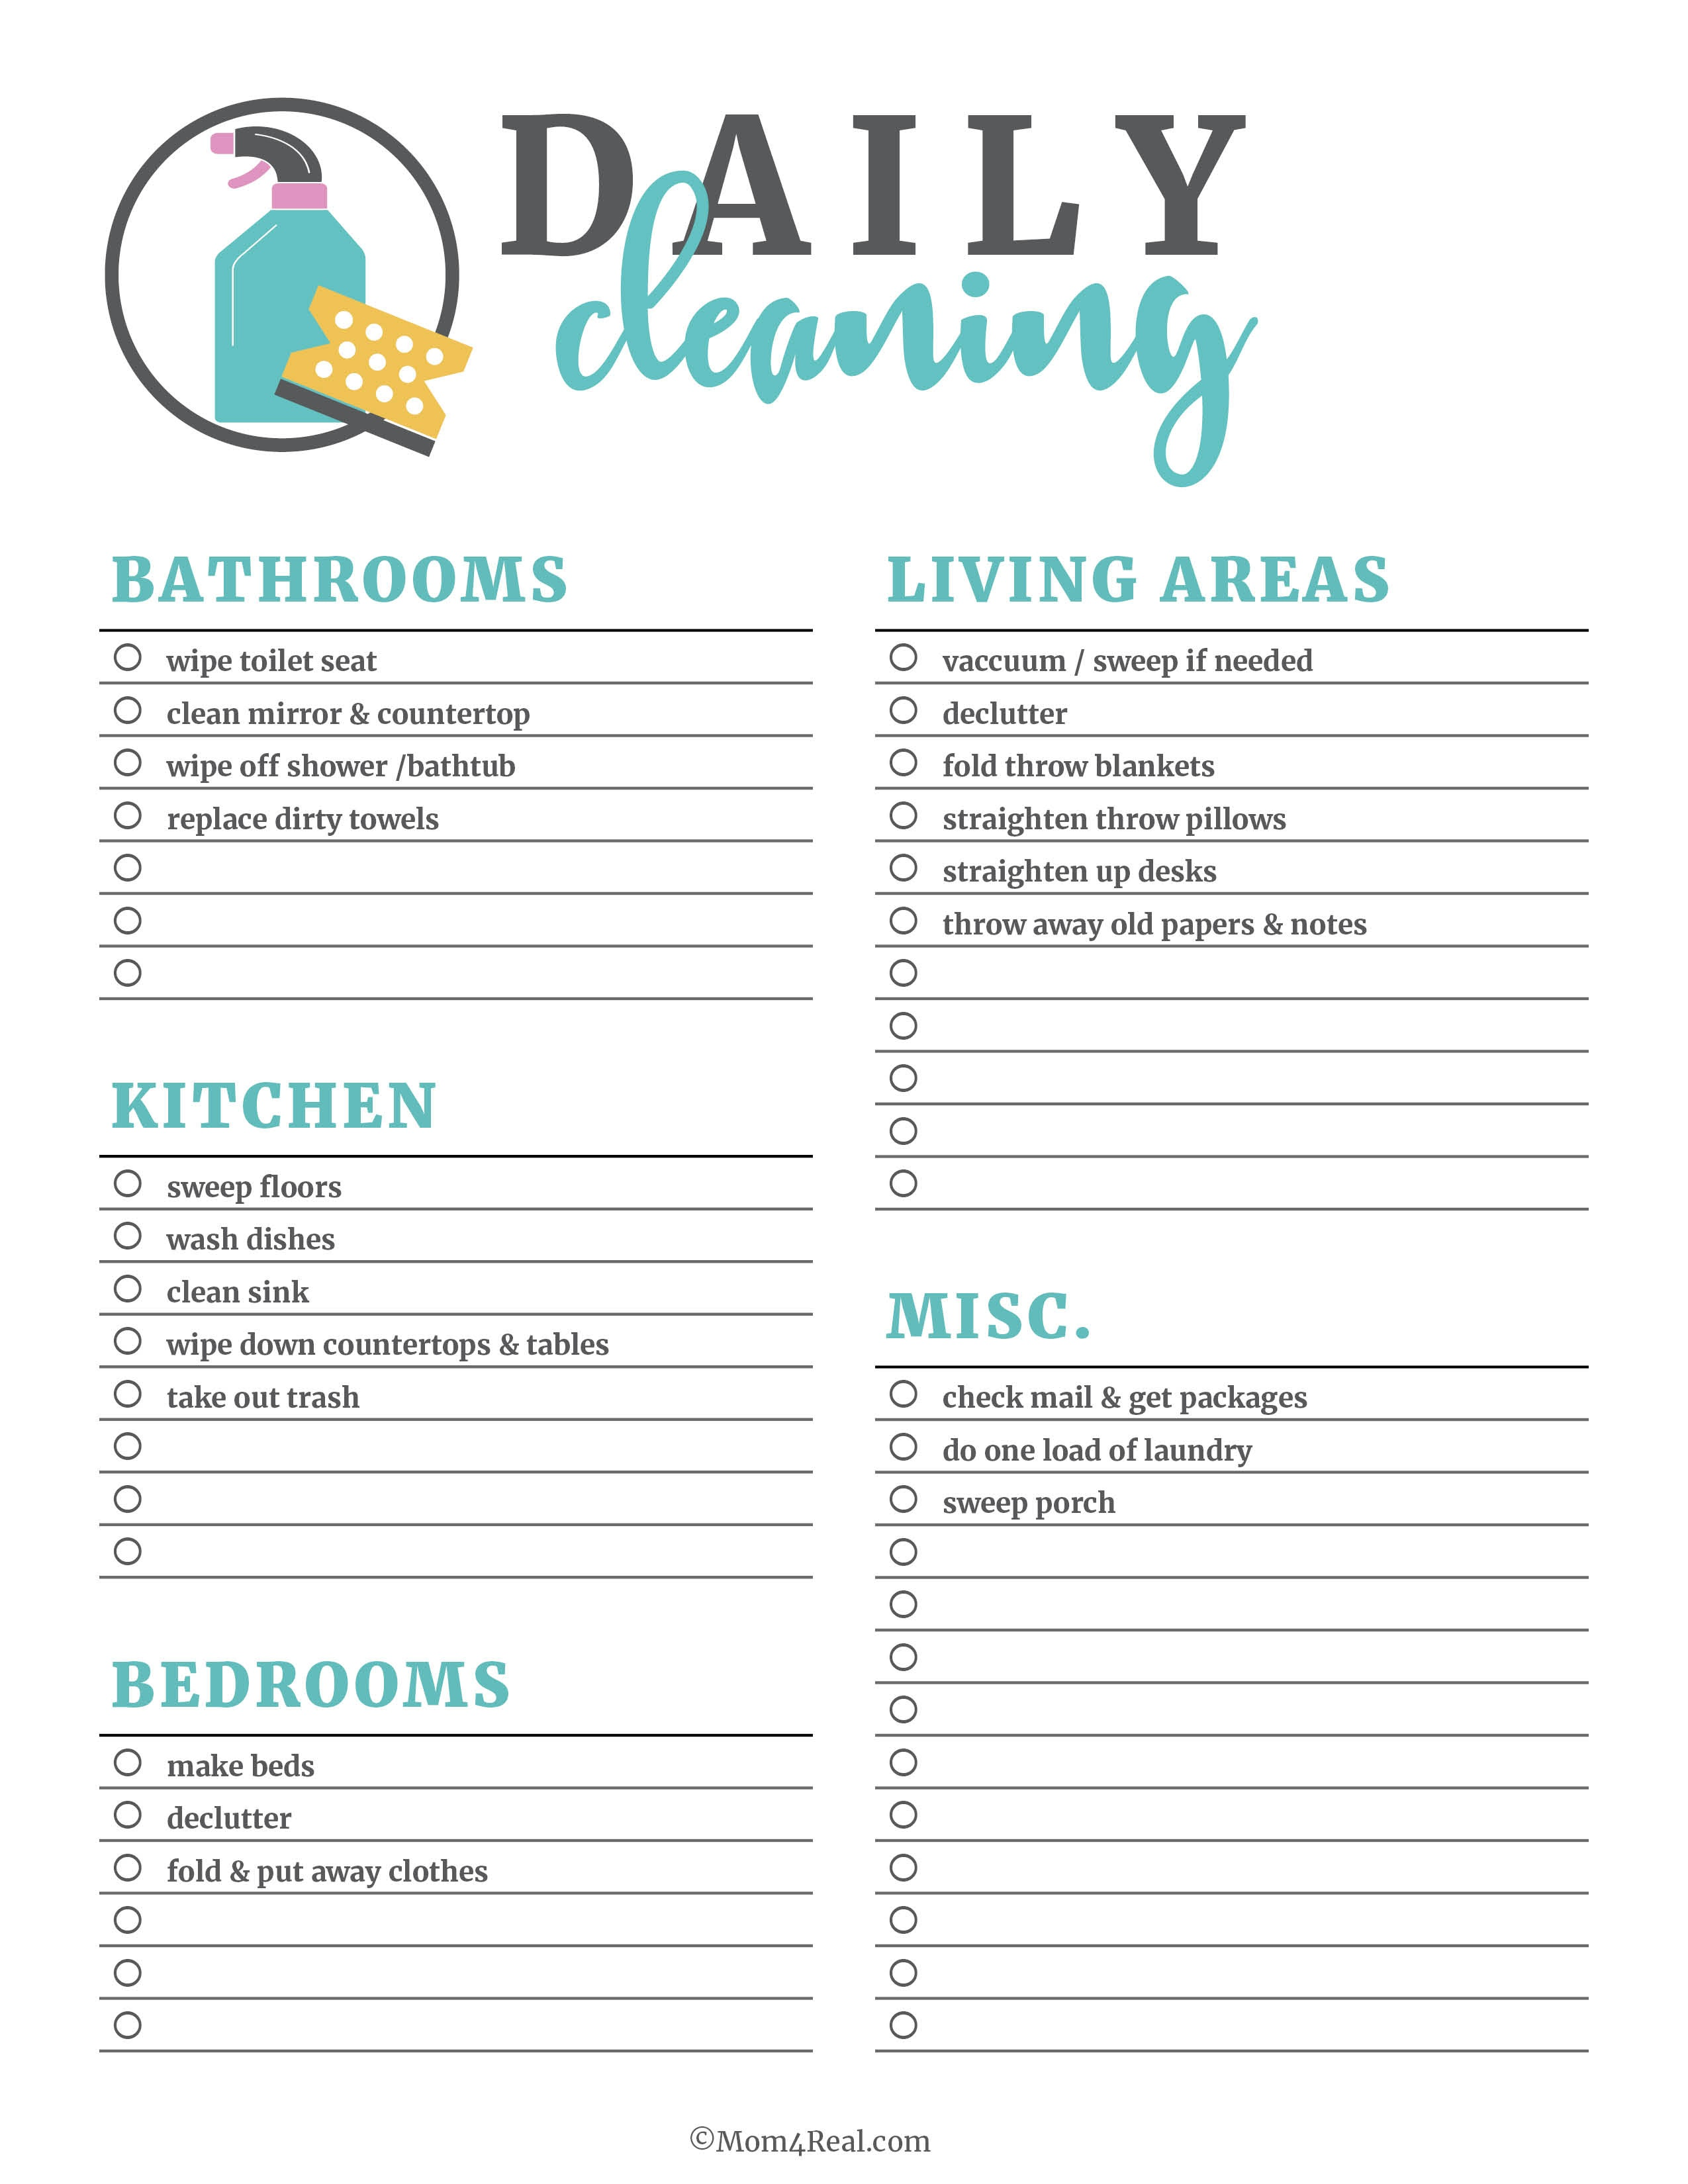 Printable Cleaning Checklists For Daily, Weekly And Monthly Cleaning - Free Printable Cleaning Schedule